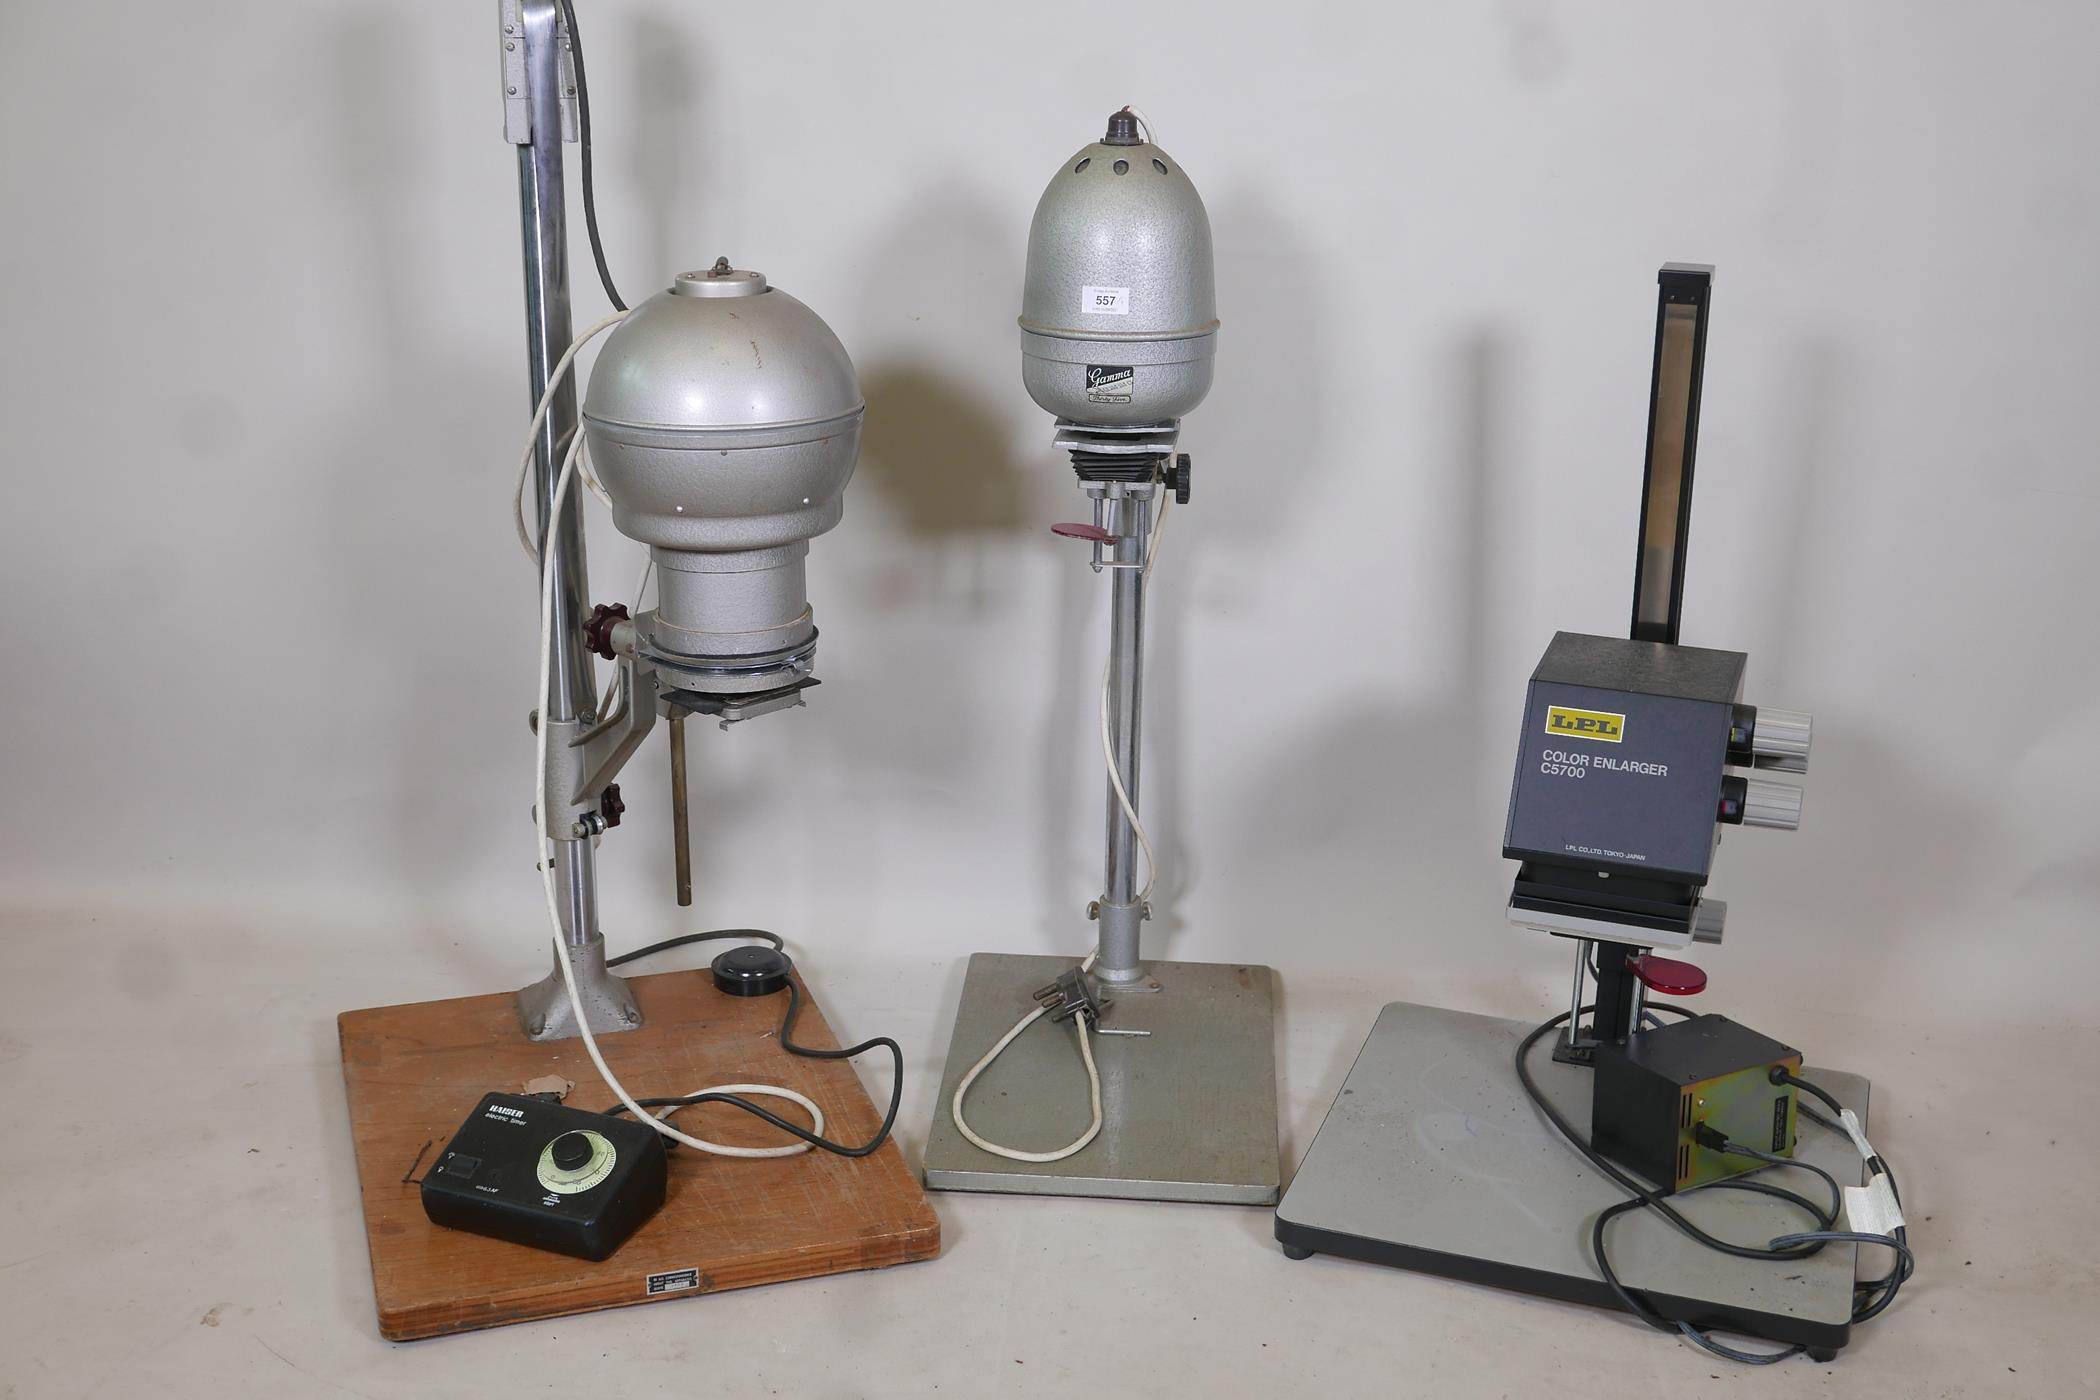 A Gamma 35 photographic enlarger, a LPL C5700 colour enlarger and another with timer